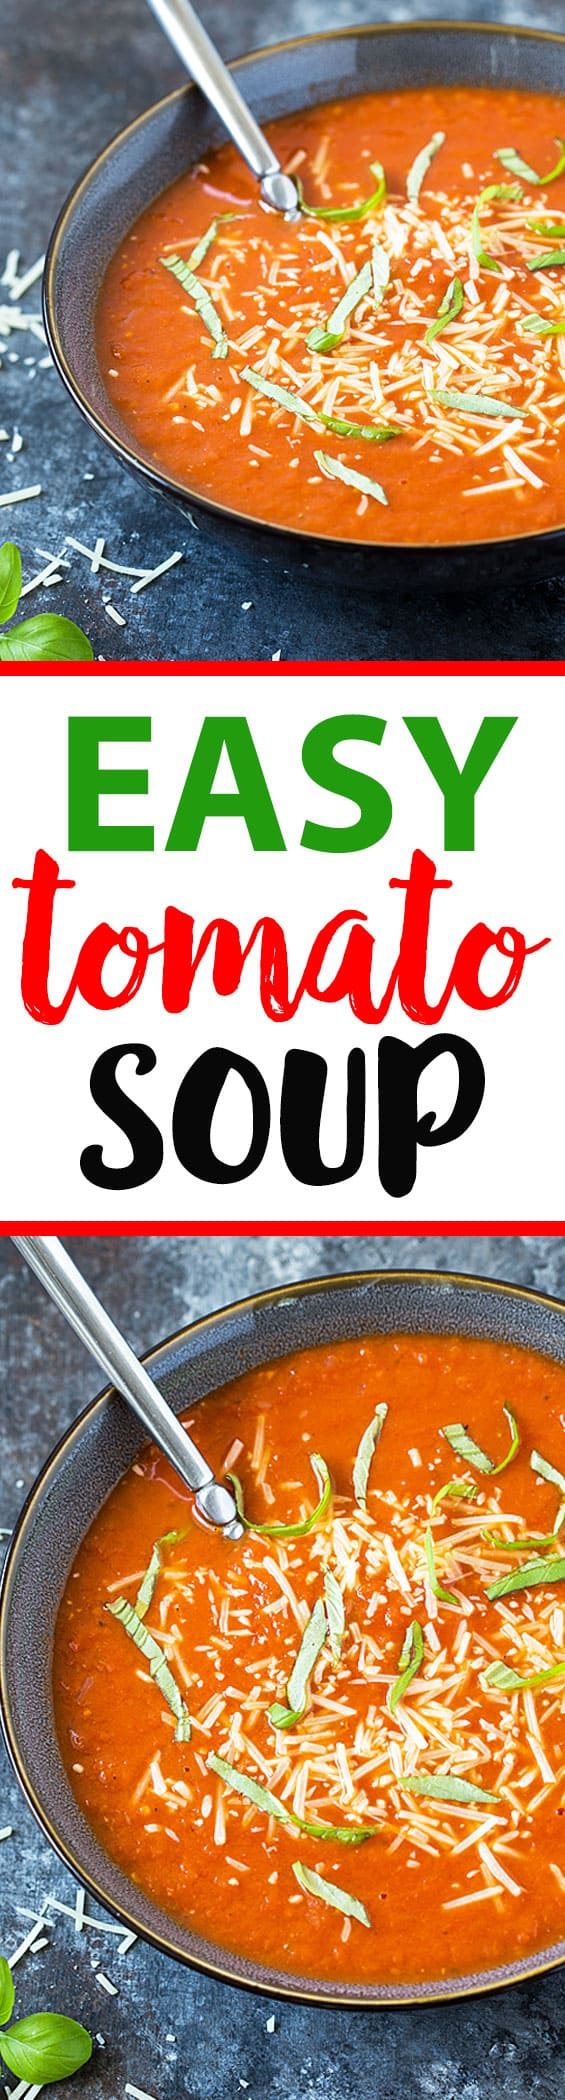 Two images of bowls of soup.  Text in center says easy tomato soup.